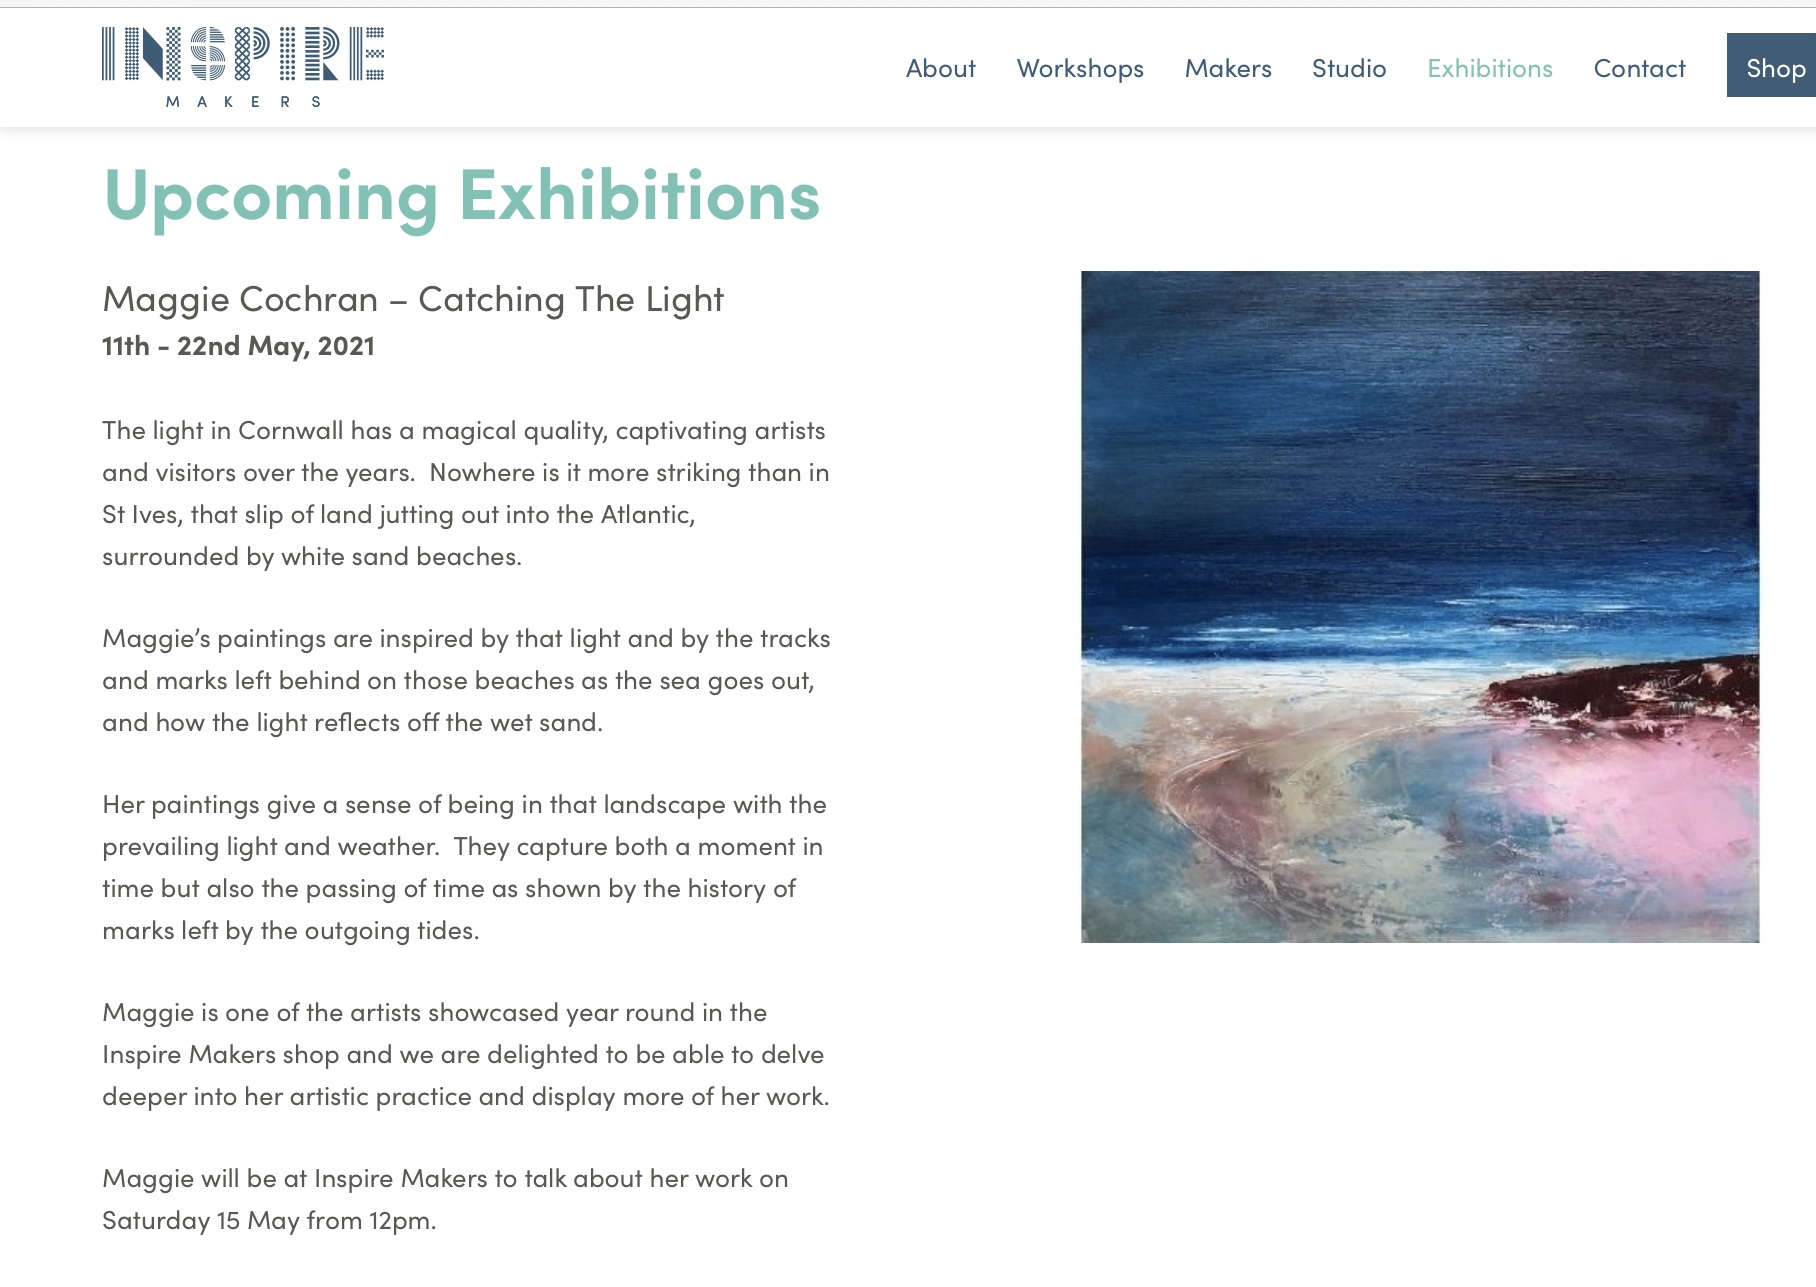 'Catching the Light' exhibition